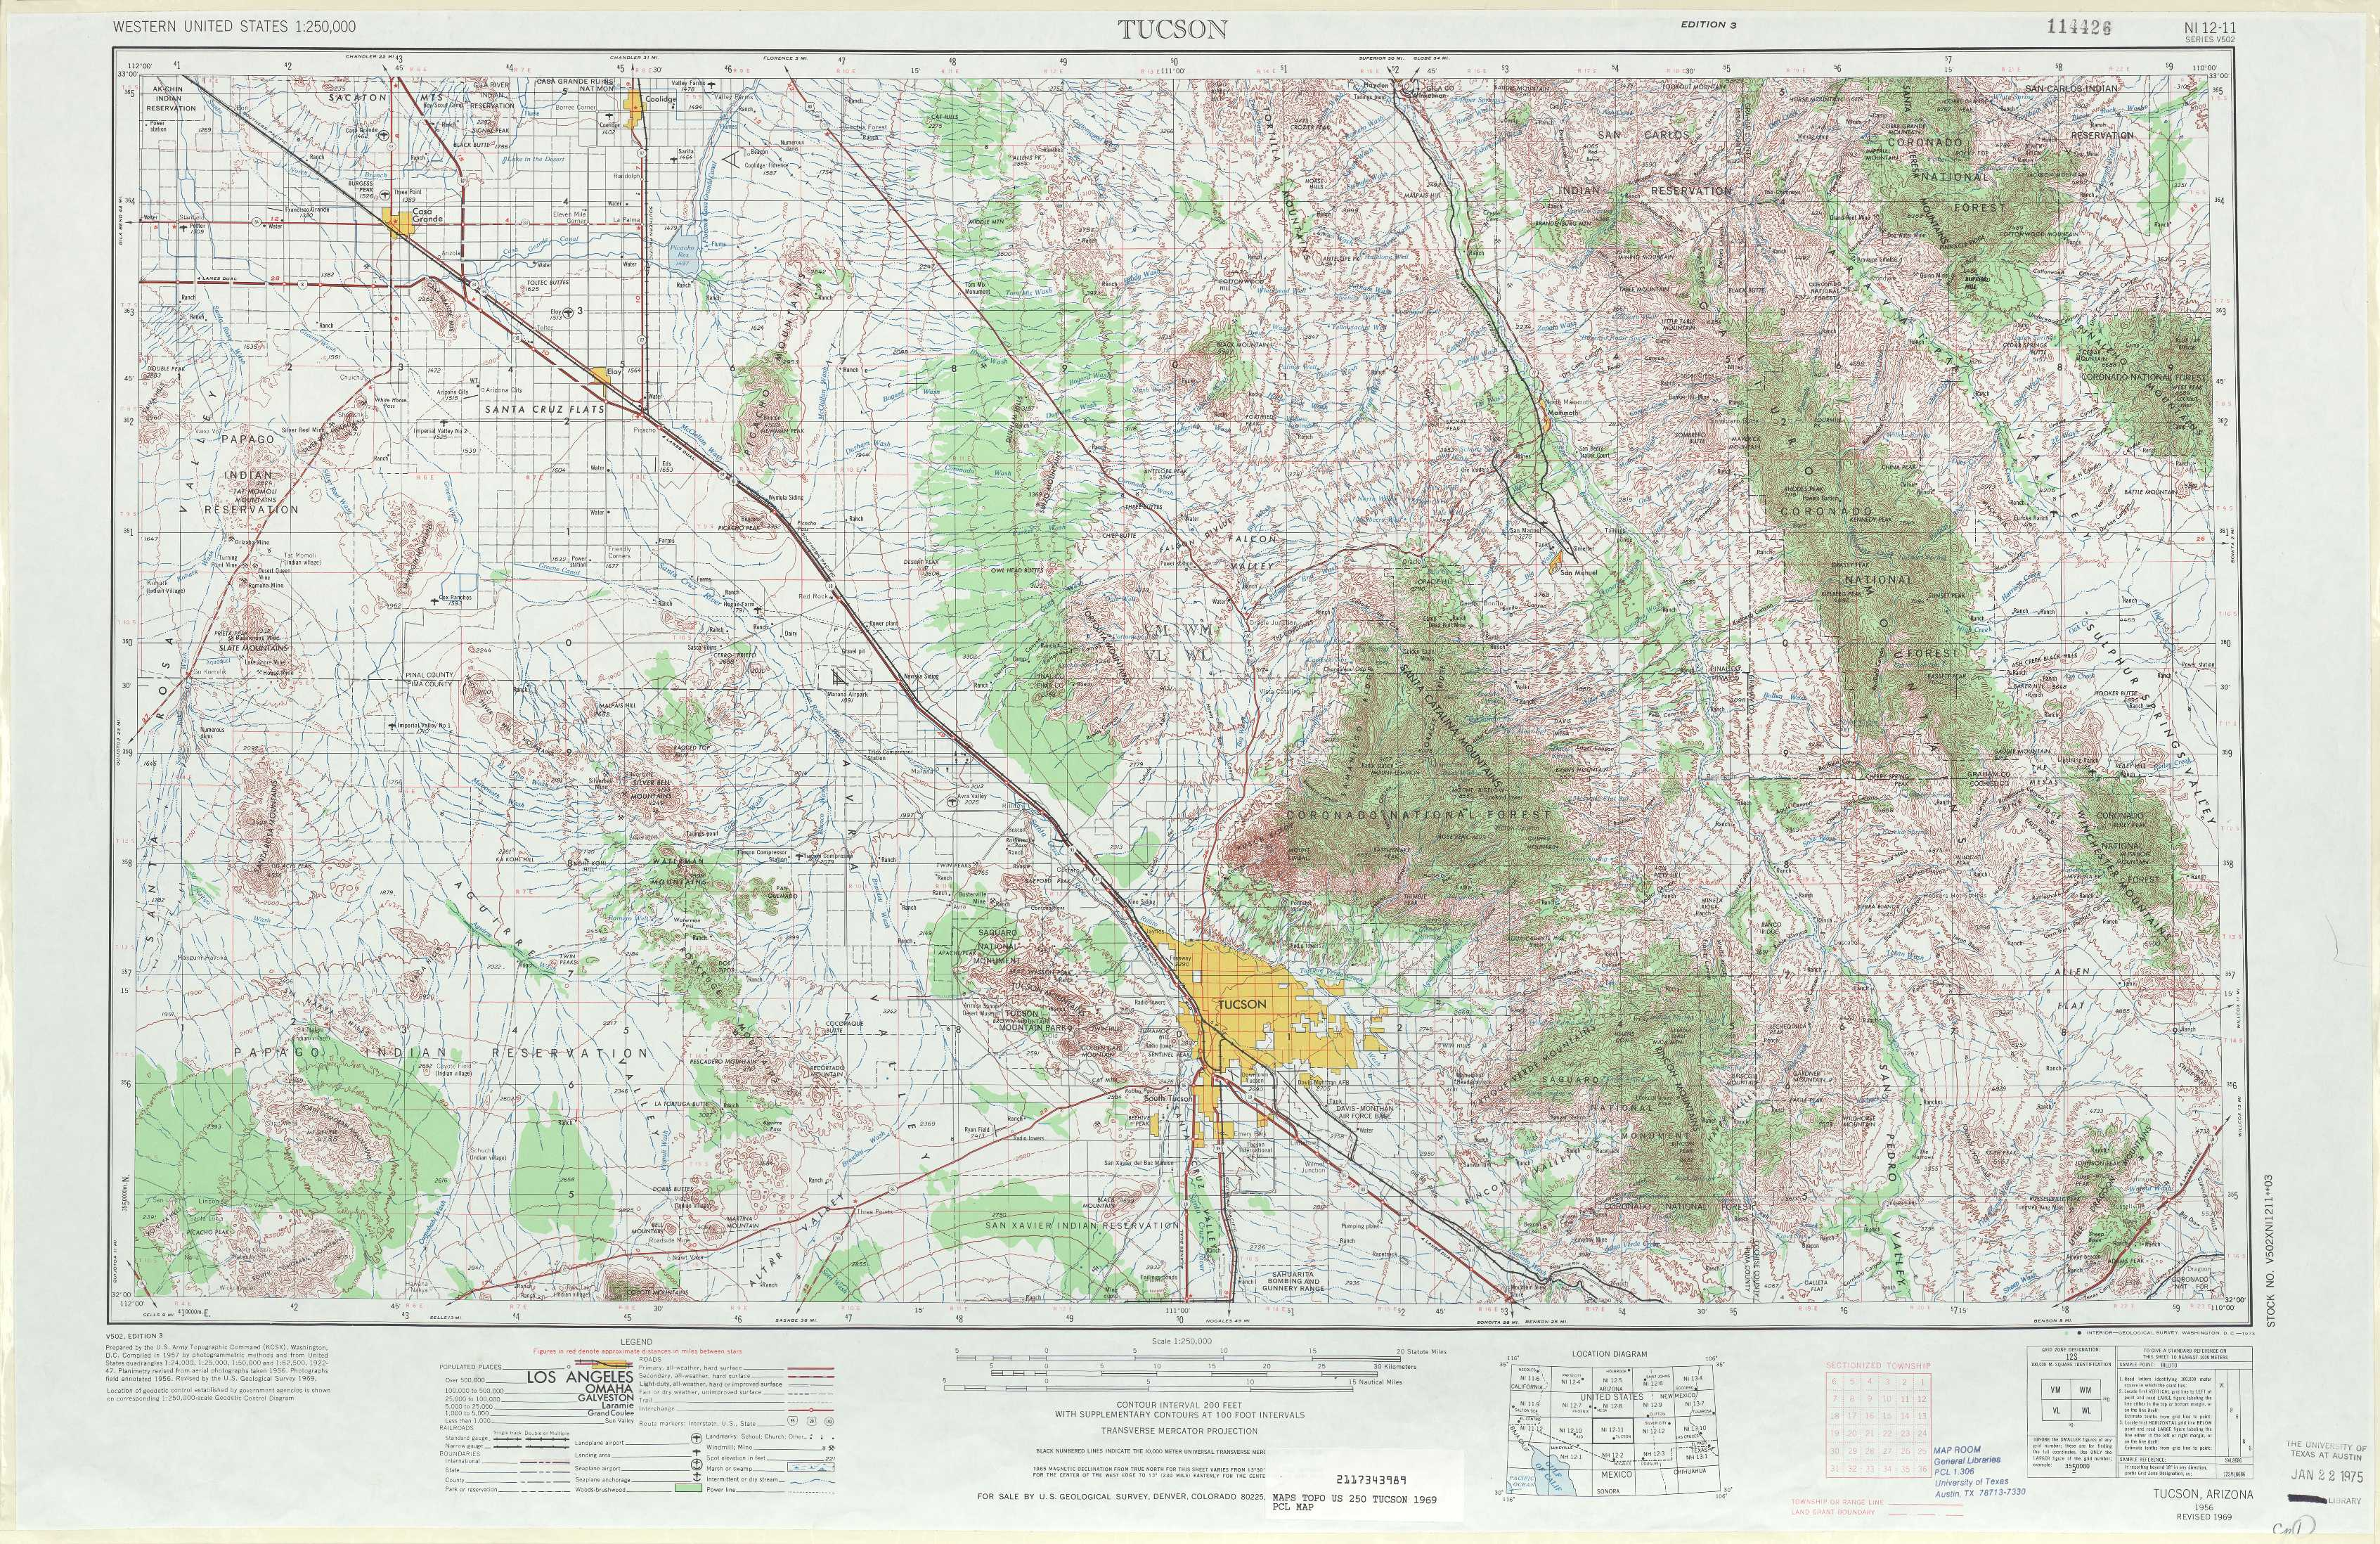 Tucson Topographic Maps AZ  USGS Topo Quad 32110a1 At 1